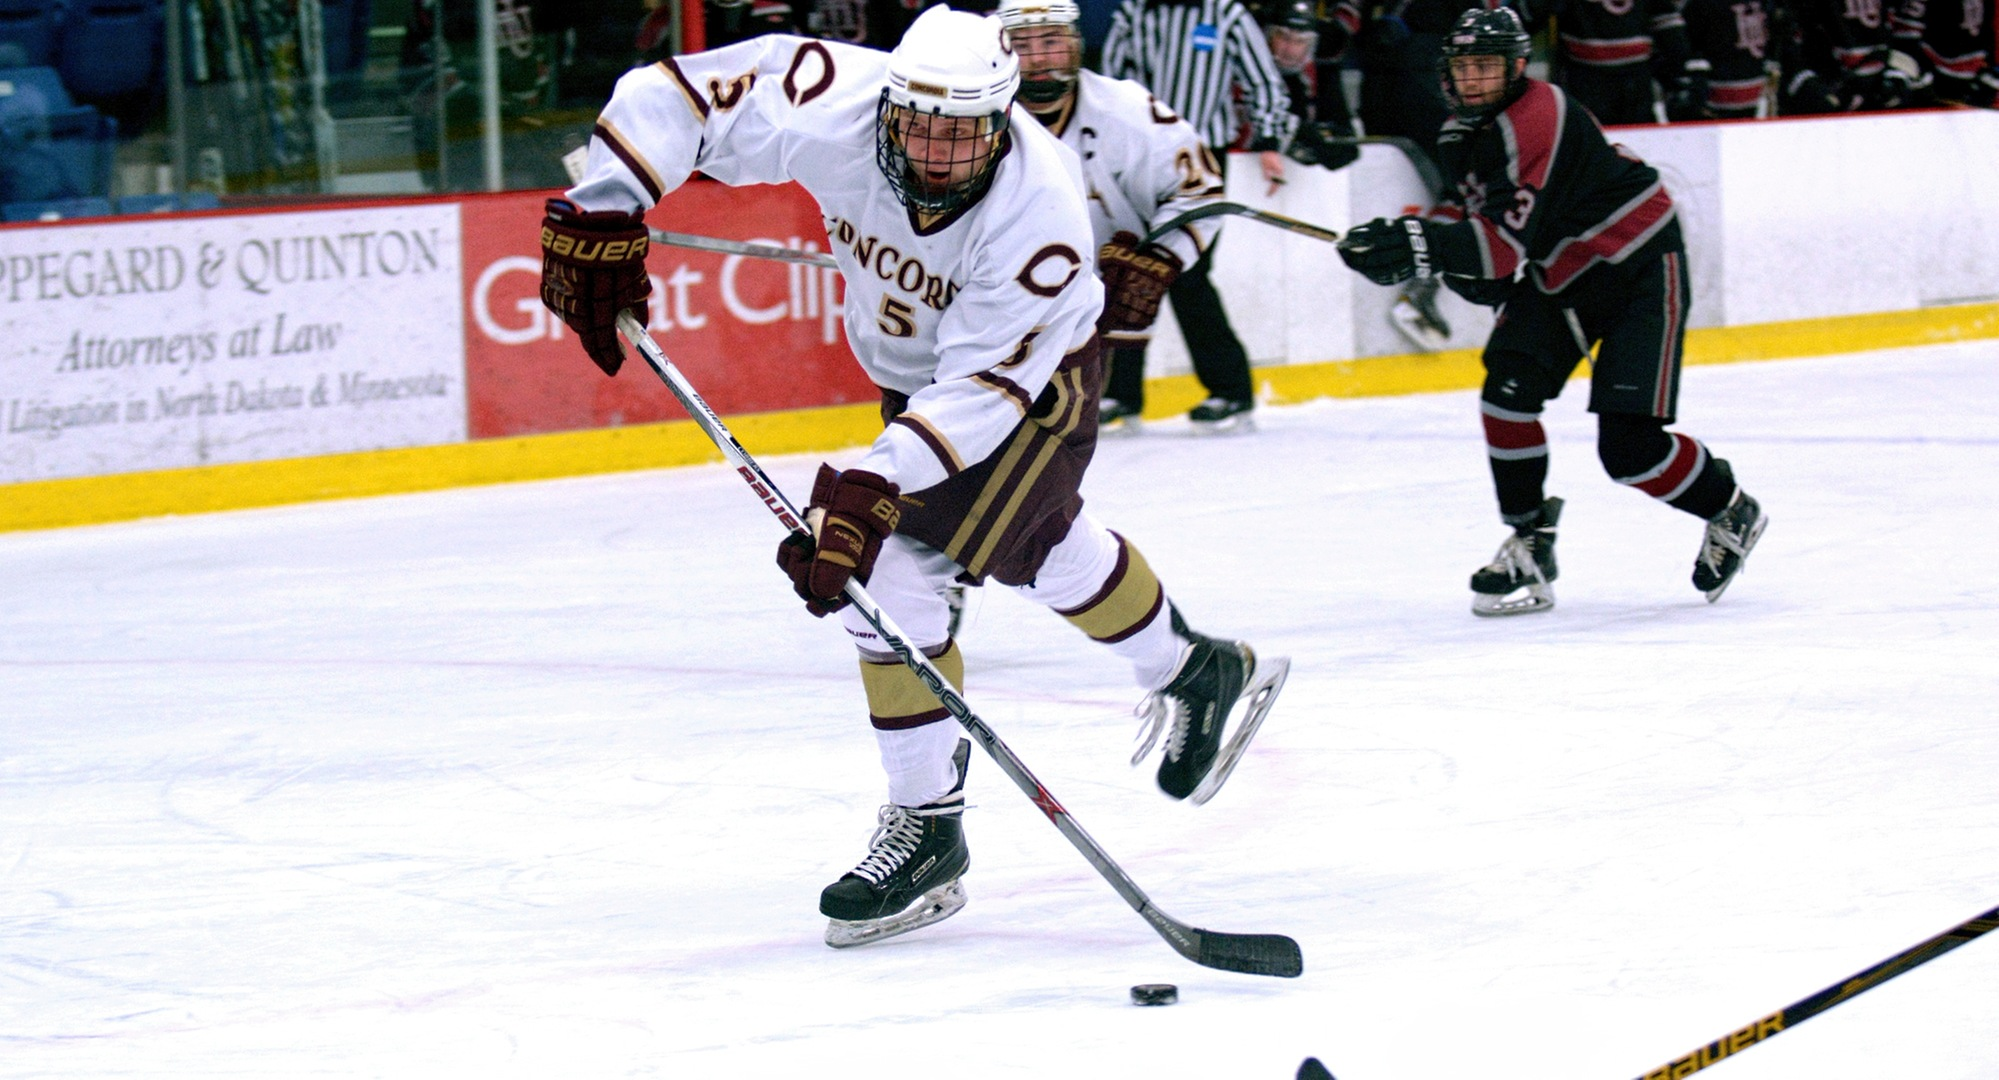 Freshman Tanner Okeson scored his first collegiate goal in the Cobbers' series finale at Augsburg.